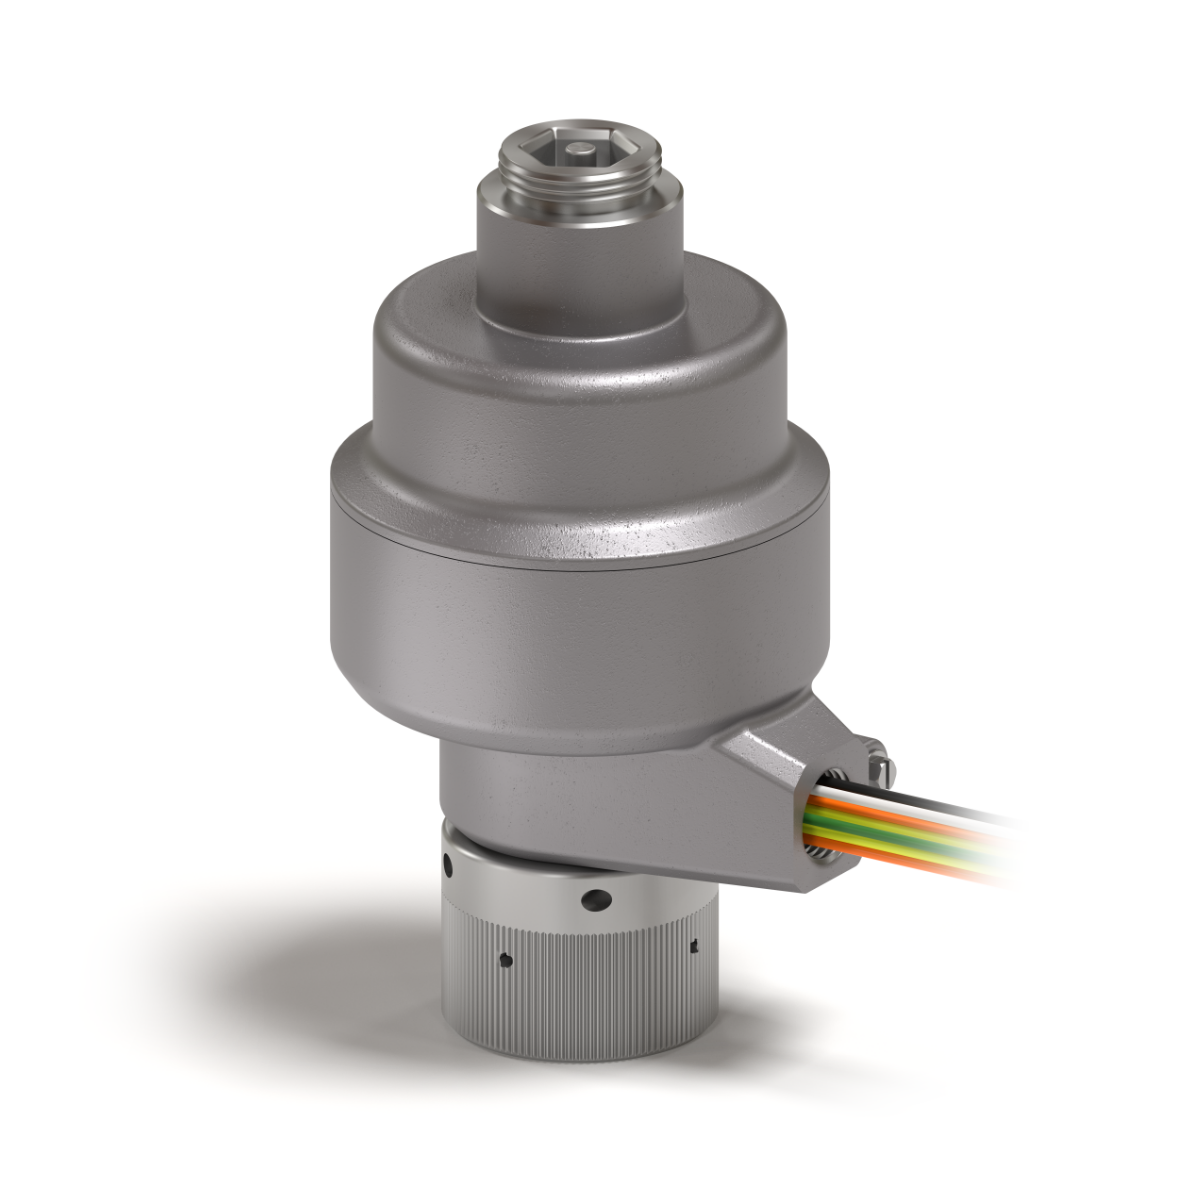 The Explosion Proof Actuator from TLX Technologies